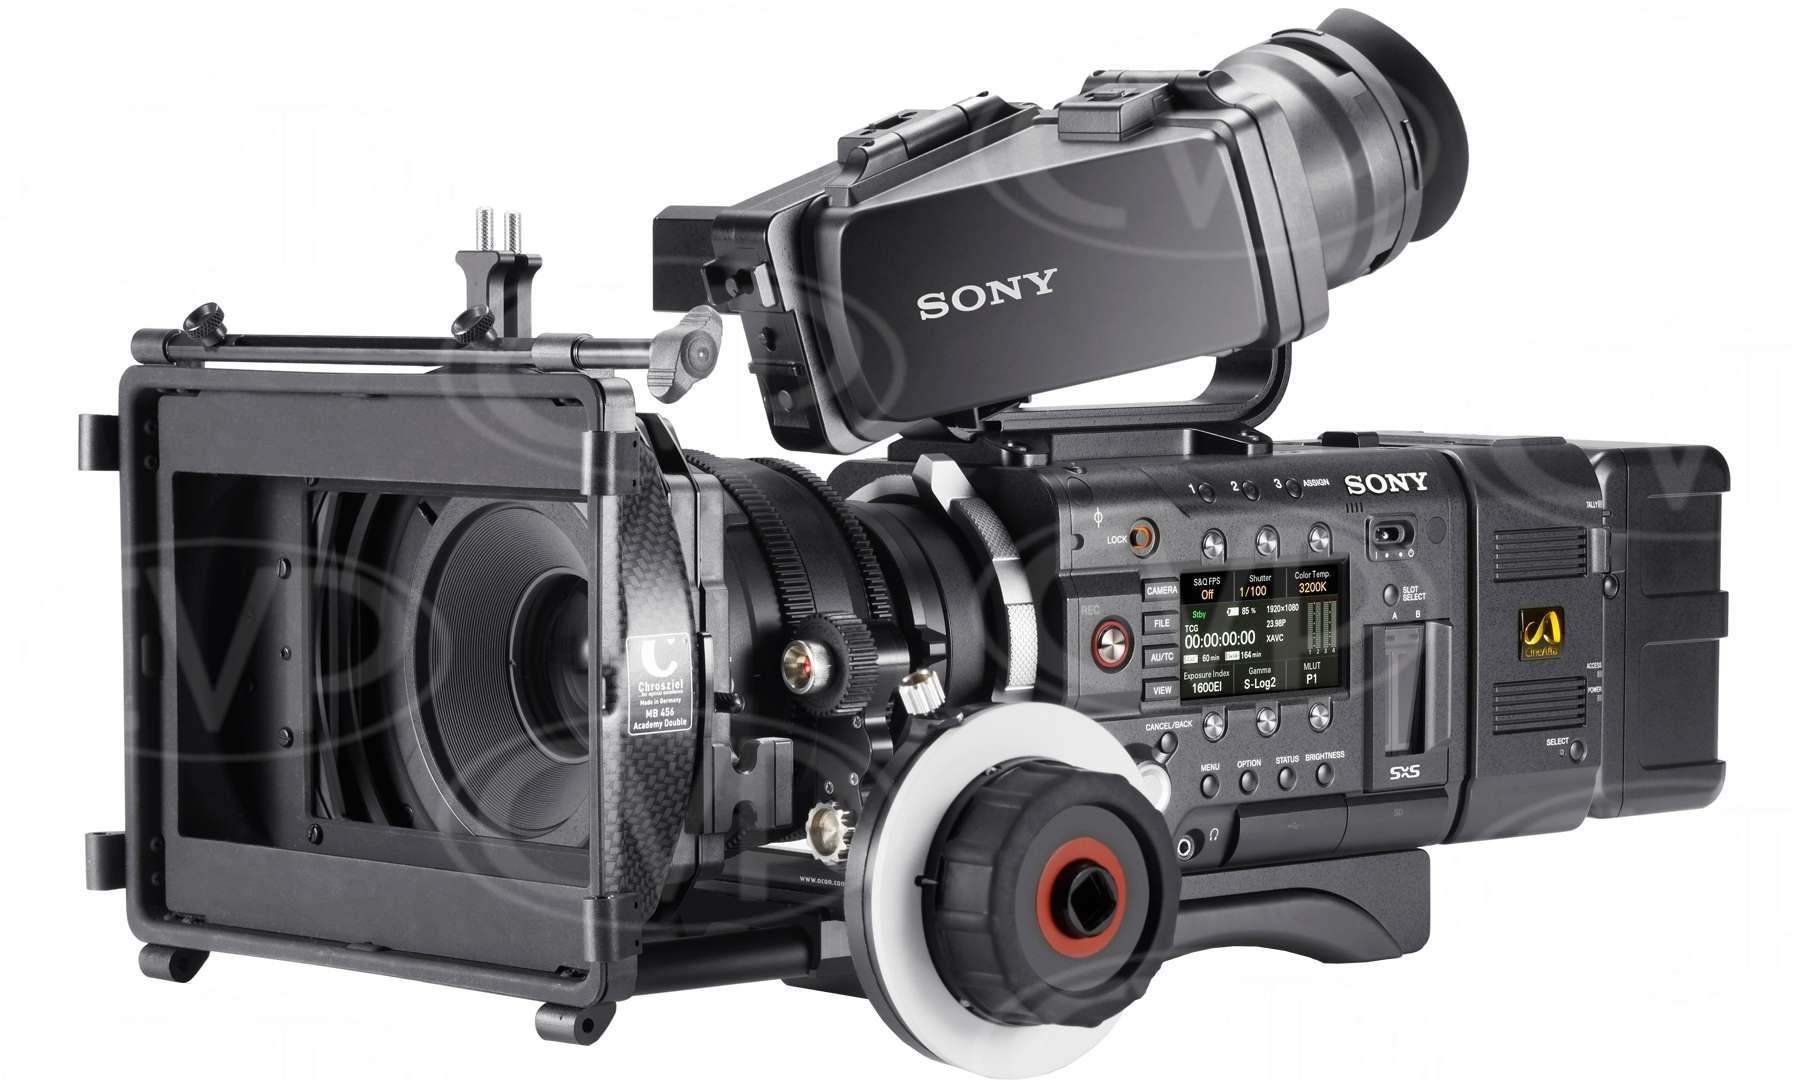 Sony PMW-F55 (PMWF55) Super 35mm Full HD 4K CMOS Sensor Compact CineAlta Camcorder - Records HD/2K/4K on SxS memory plus 16-bit RAW 2K/4K output